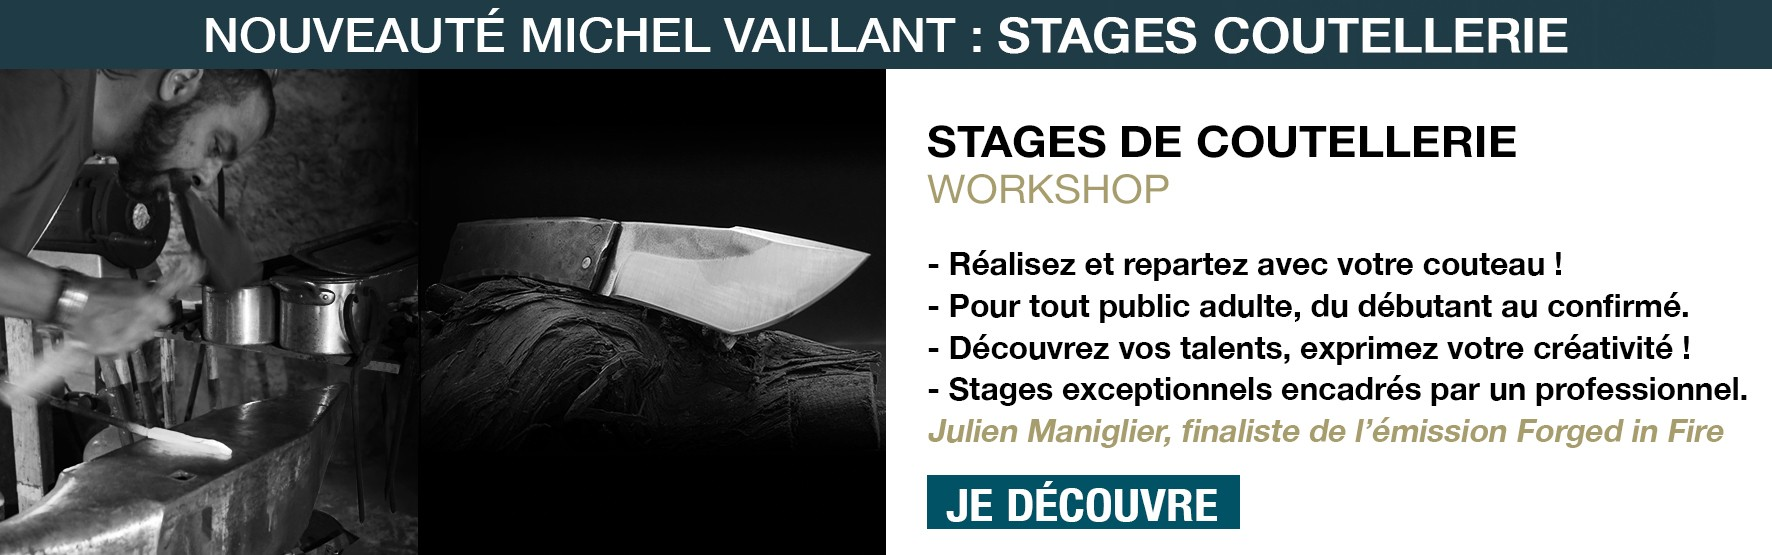 Forge - Stage - coutellerie - workshop - couteau - knife - formation